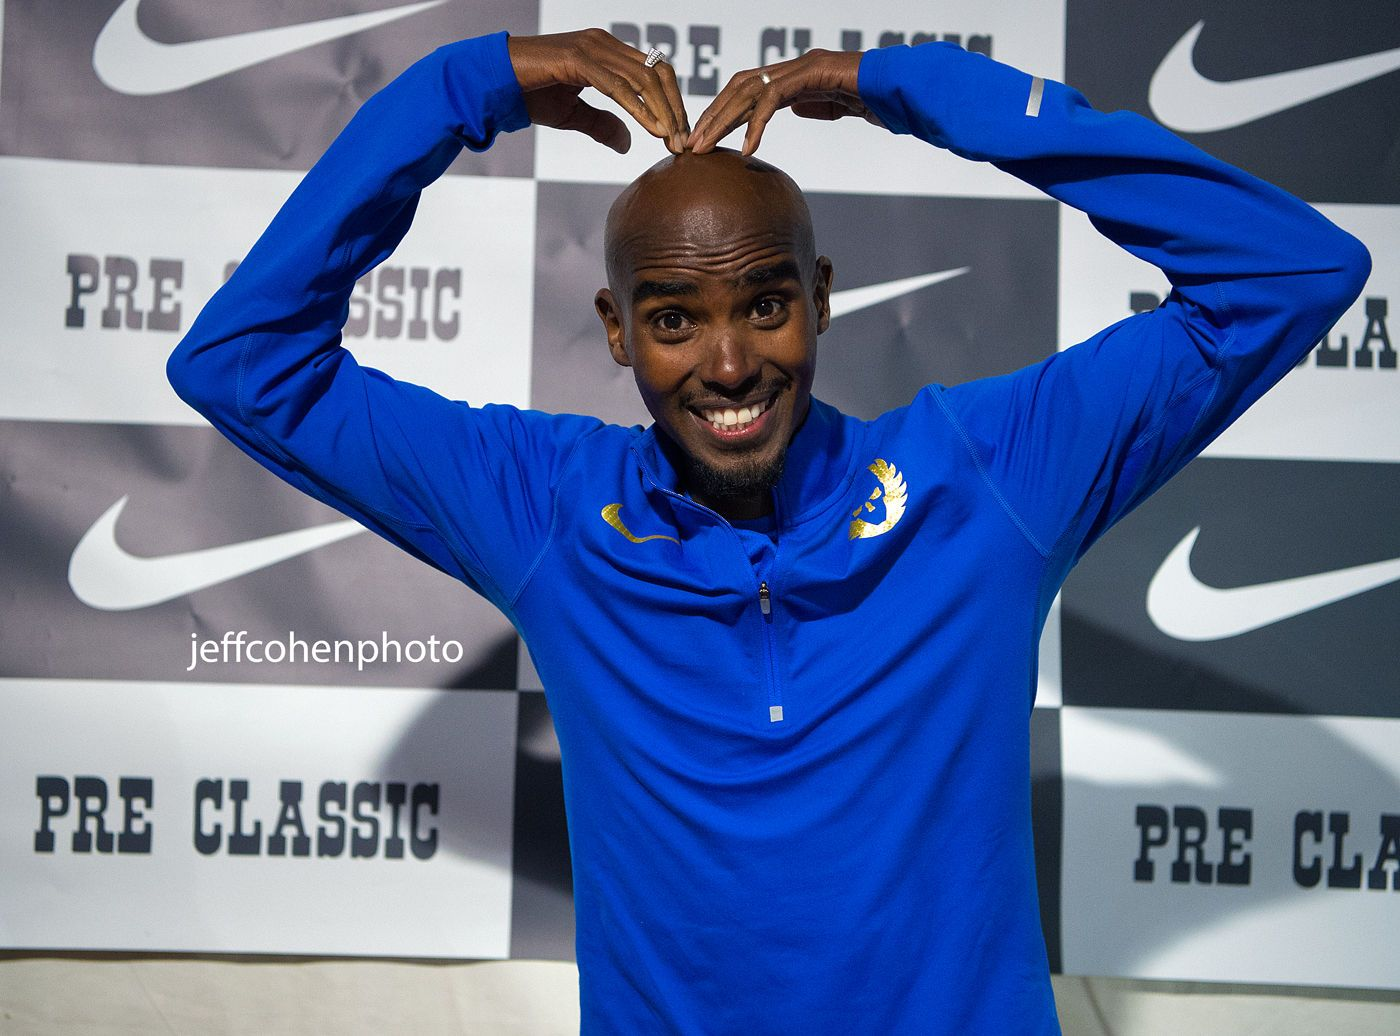 1pre_2016_night_mo_farah_mobot_jeff_cohen_photo_2360_web.jpg